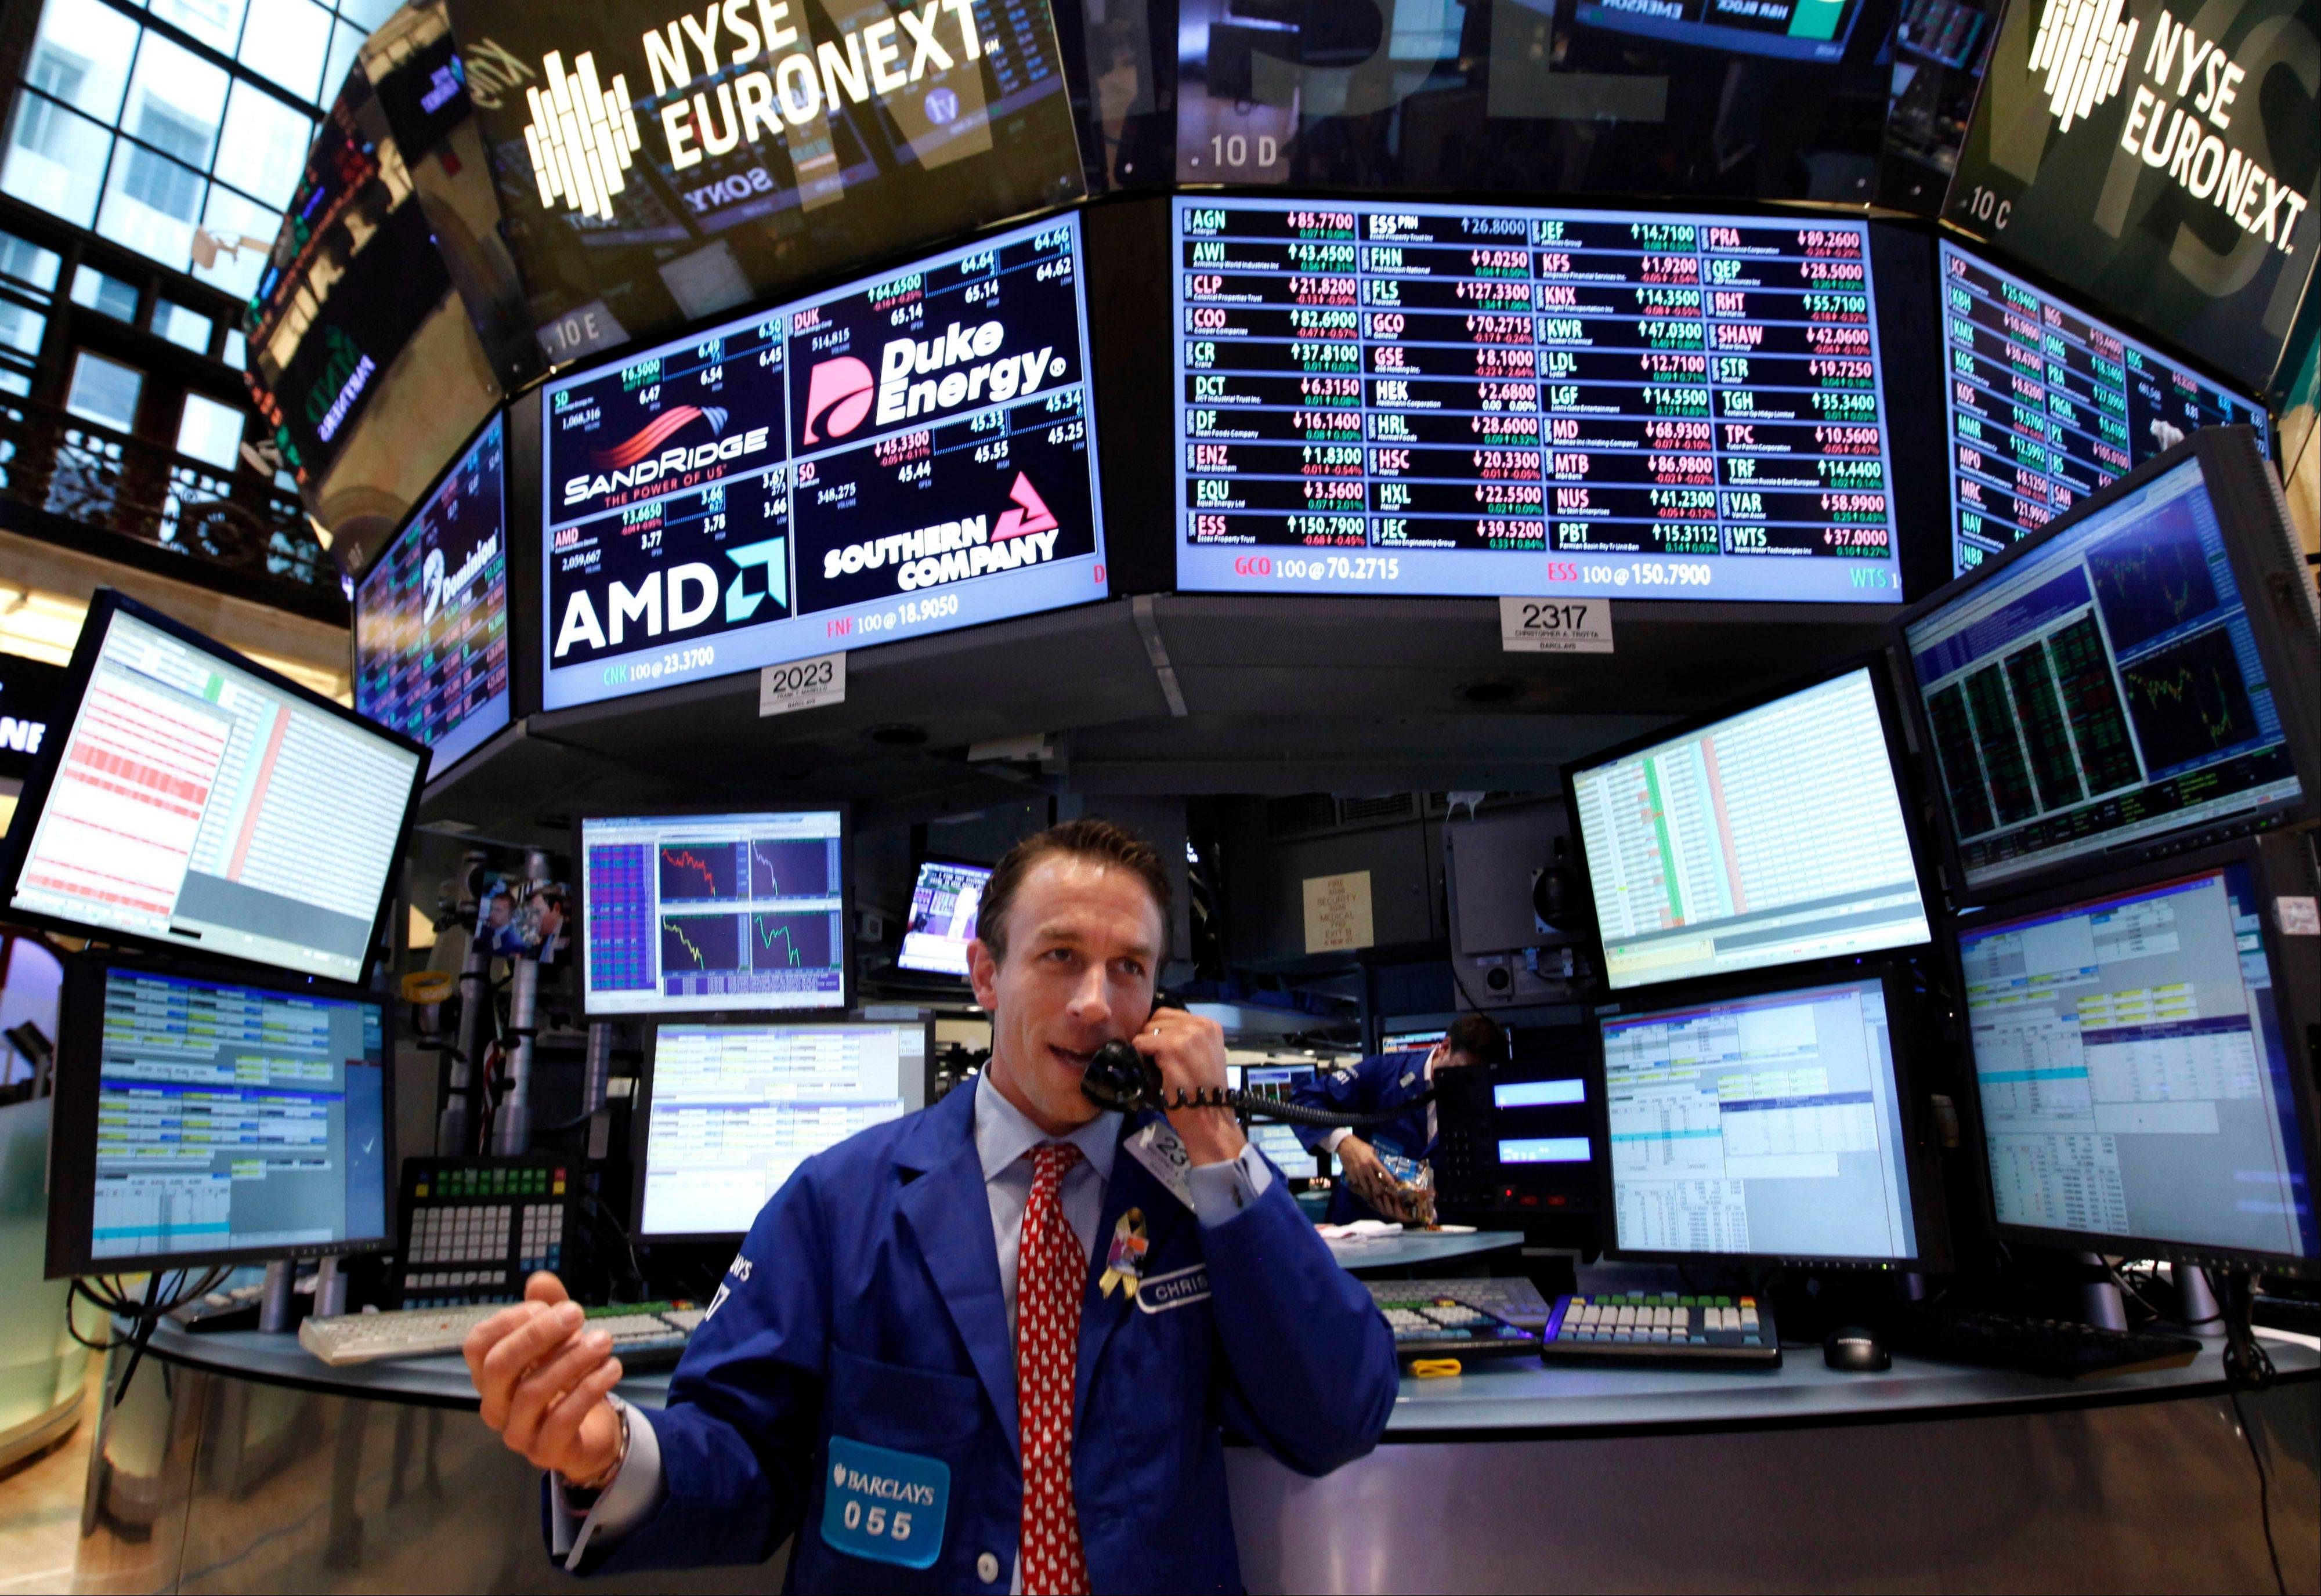 Most U.S. stocks fell, sending the Standard & Poor's 500 Index lower for a second day, amid a slump in FedEx Corp. and disappointing global economic data as investors awaited the European Central Bank's plan to buy bonds.